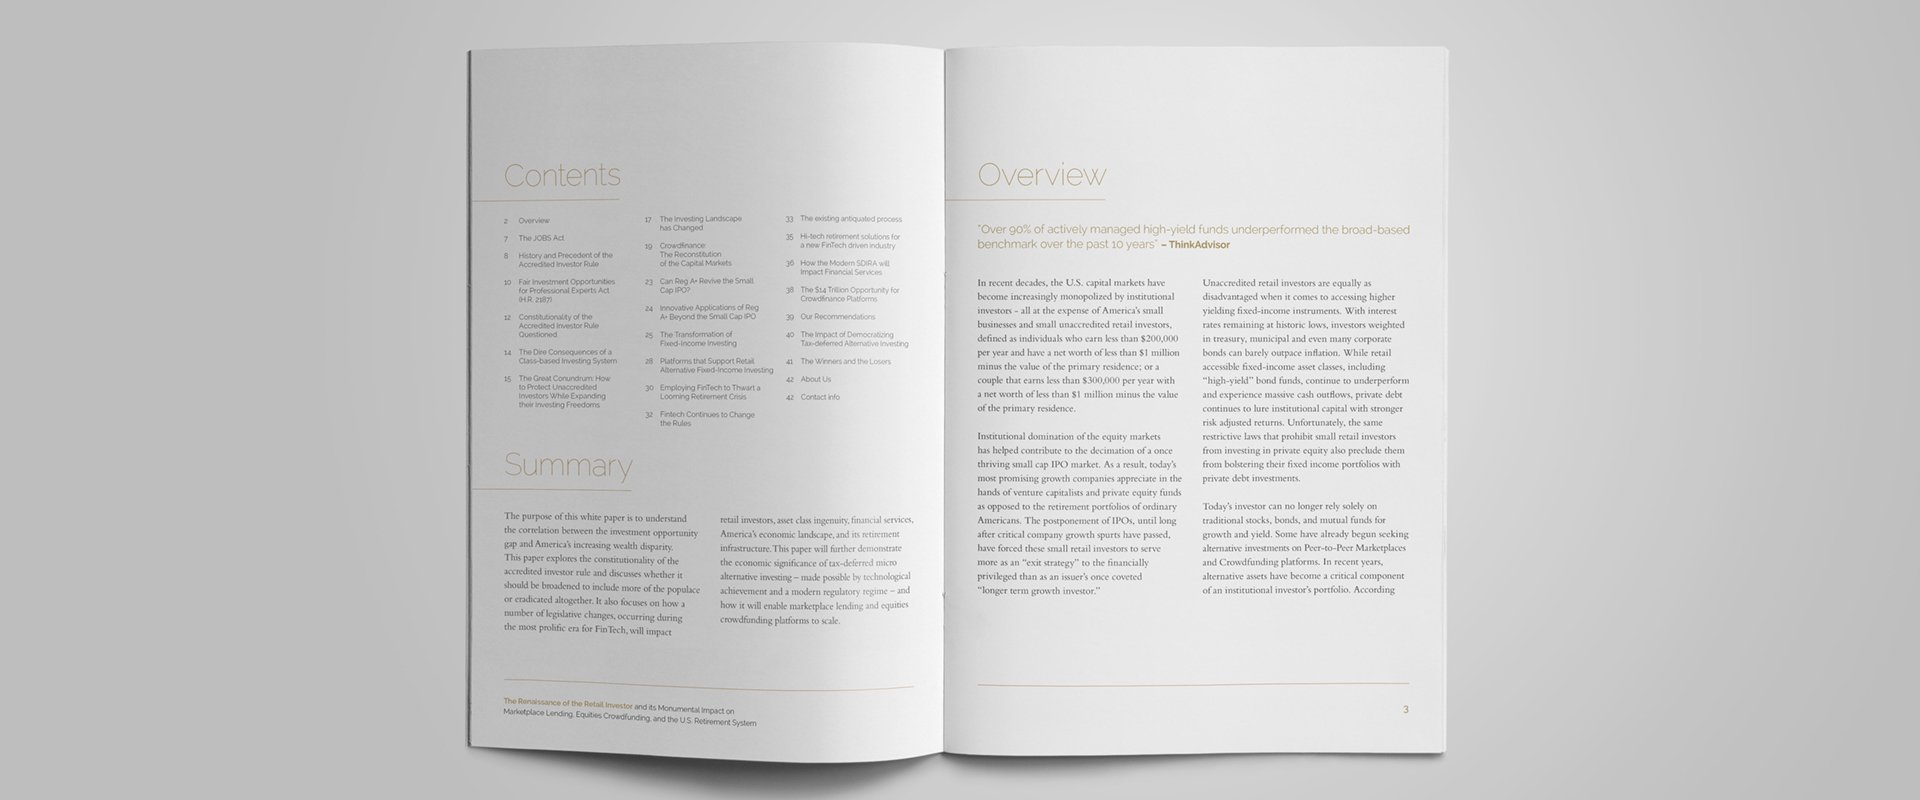 White paper spread outlining the brochures content, a summary and an overview.